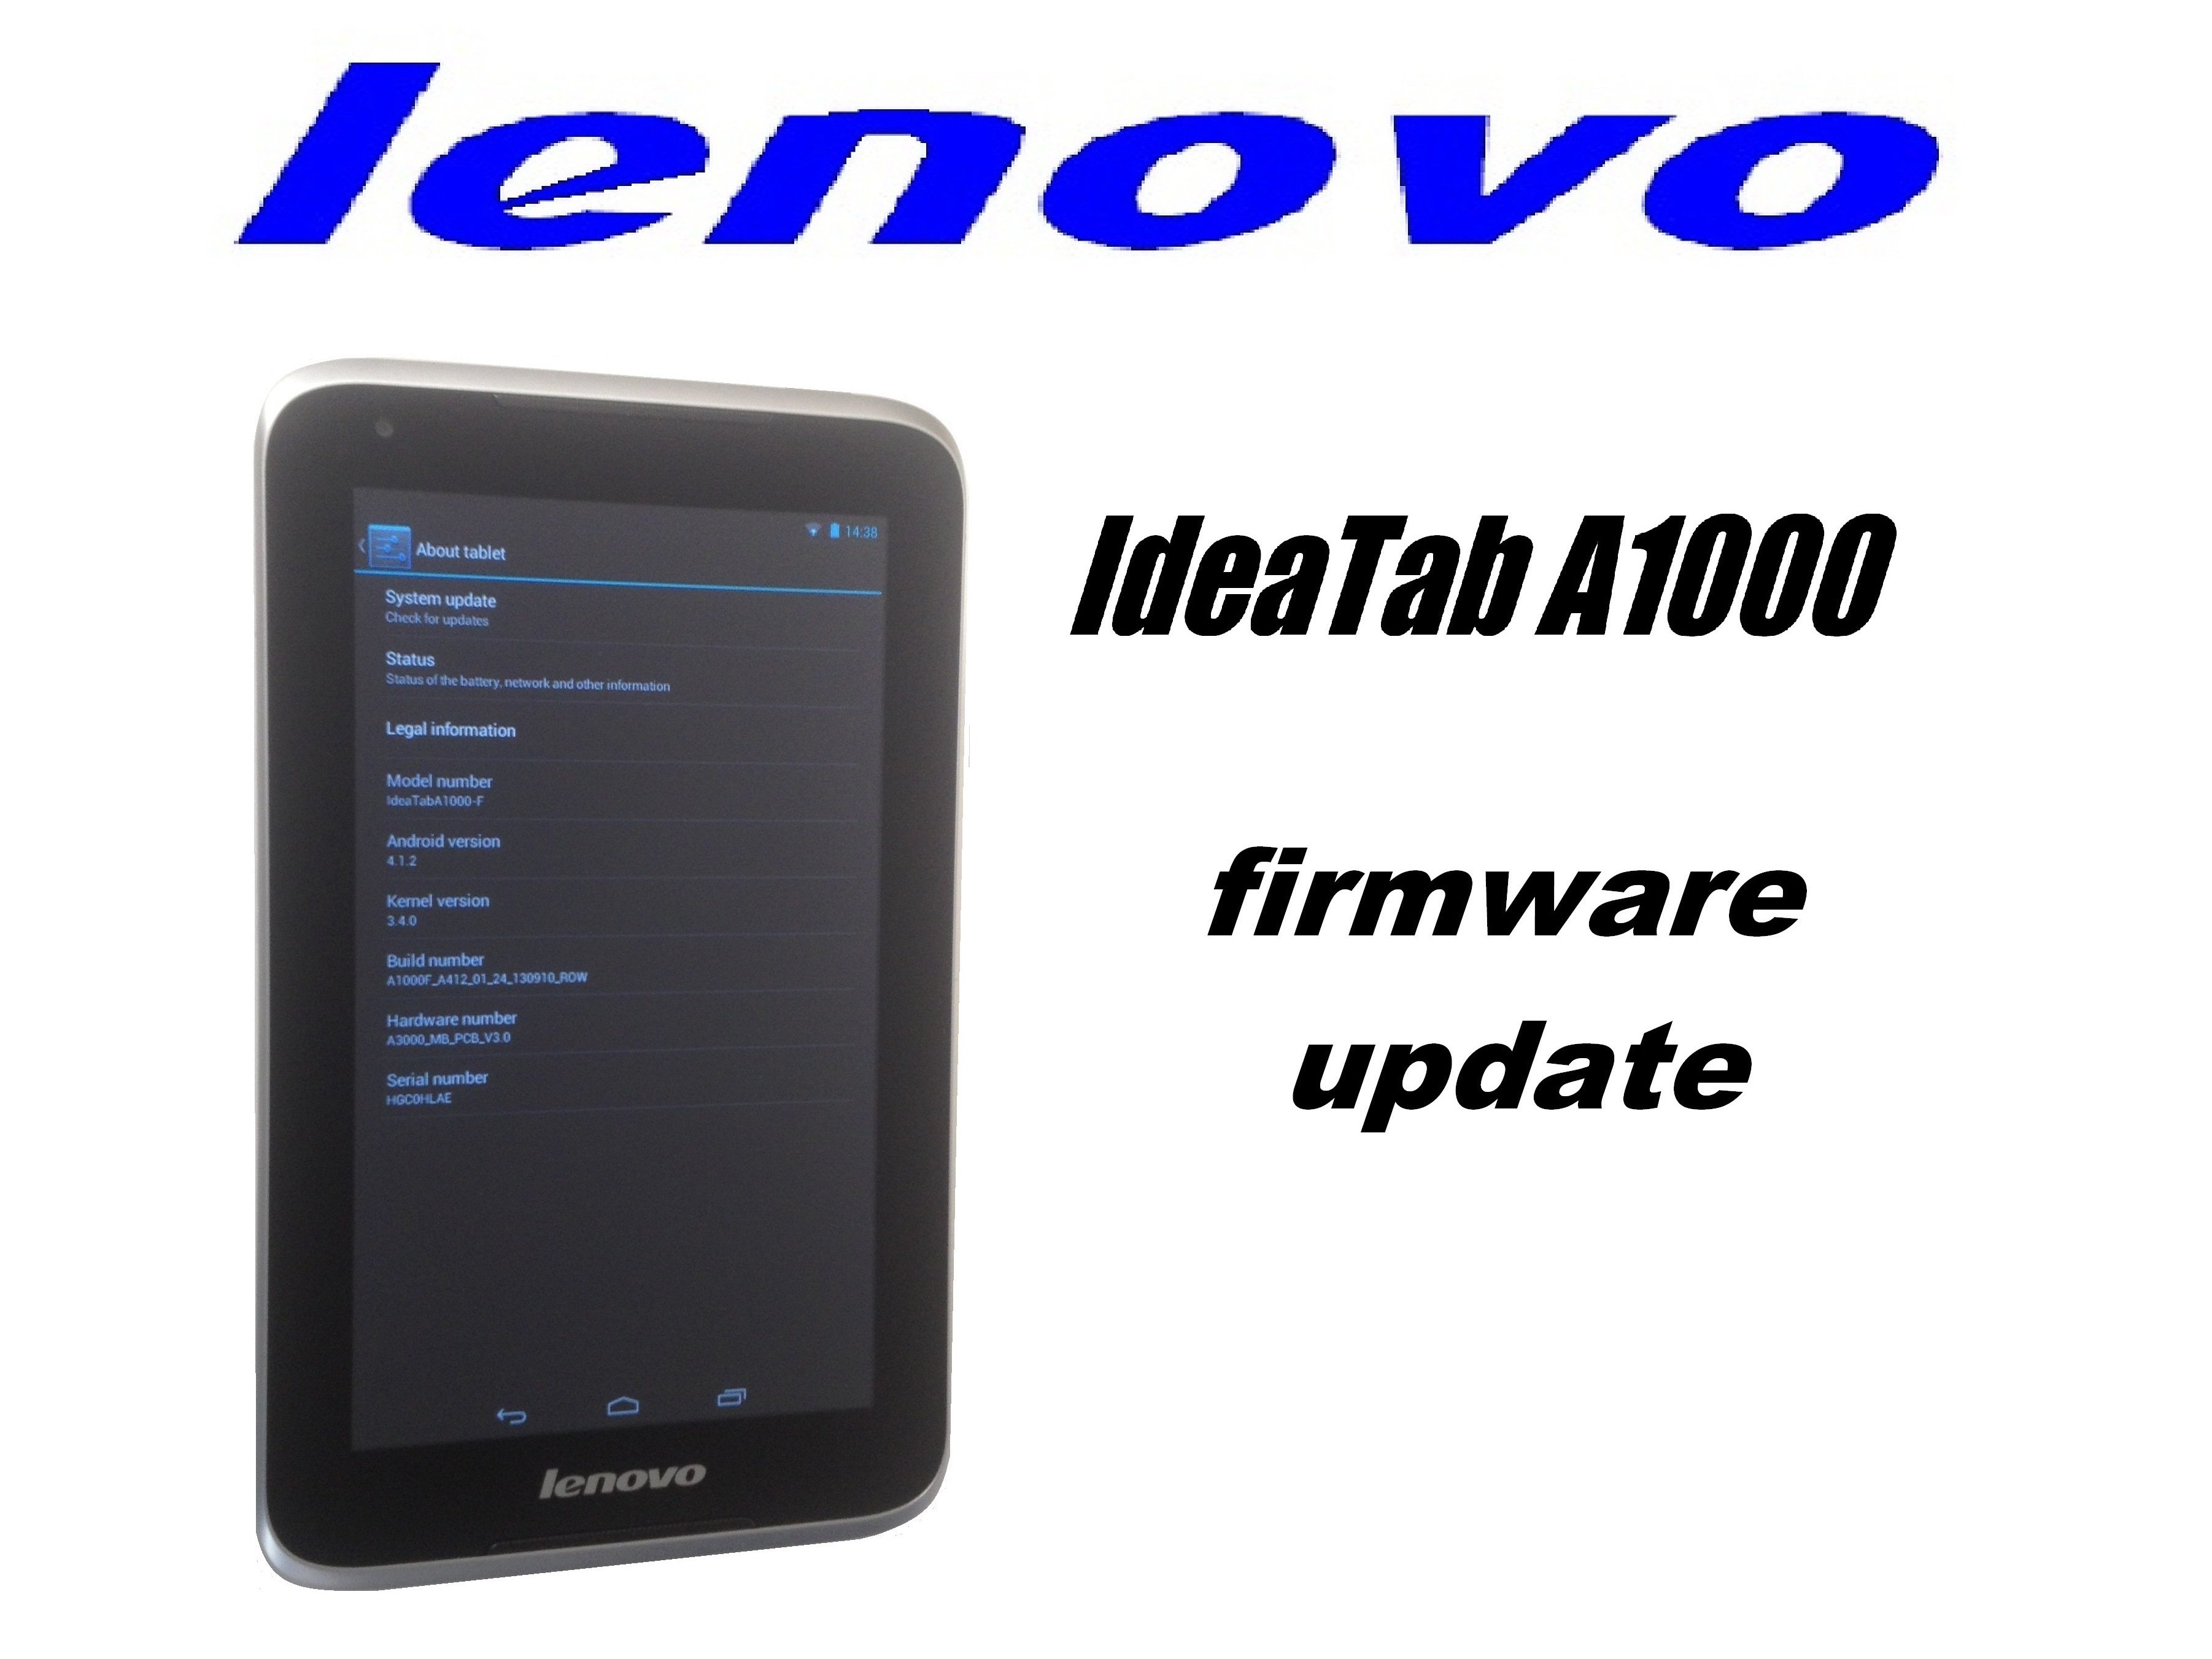 Lenovo Ideatab A1000 Firmware Update